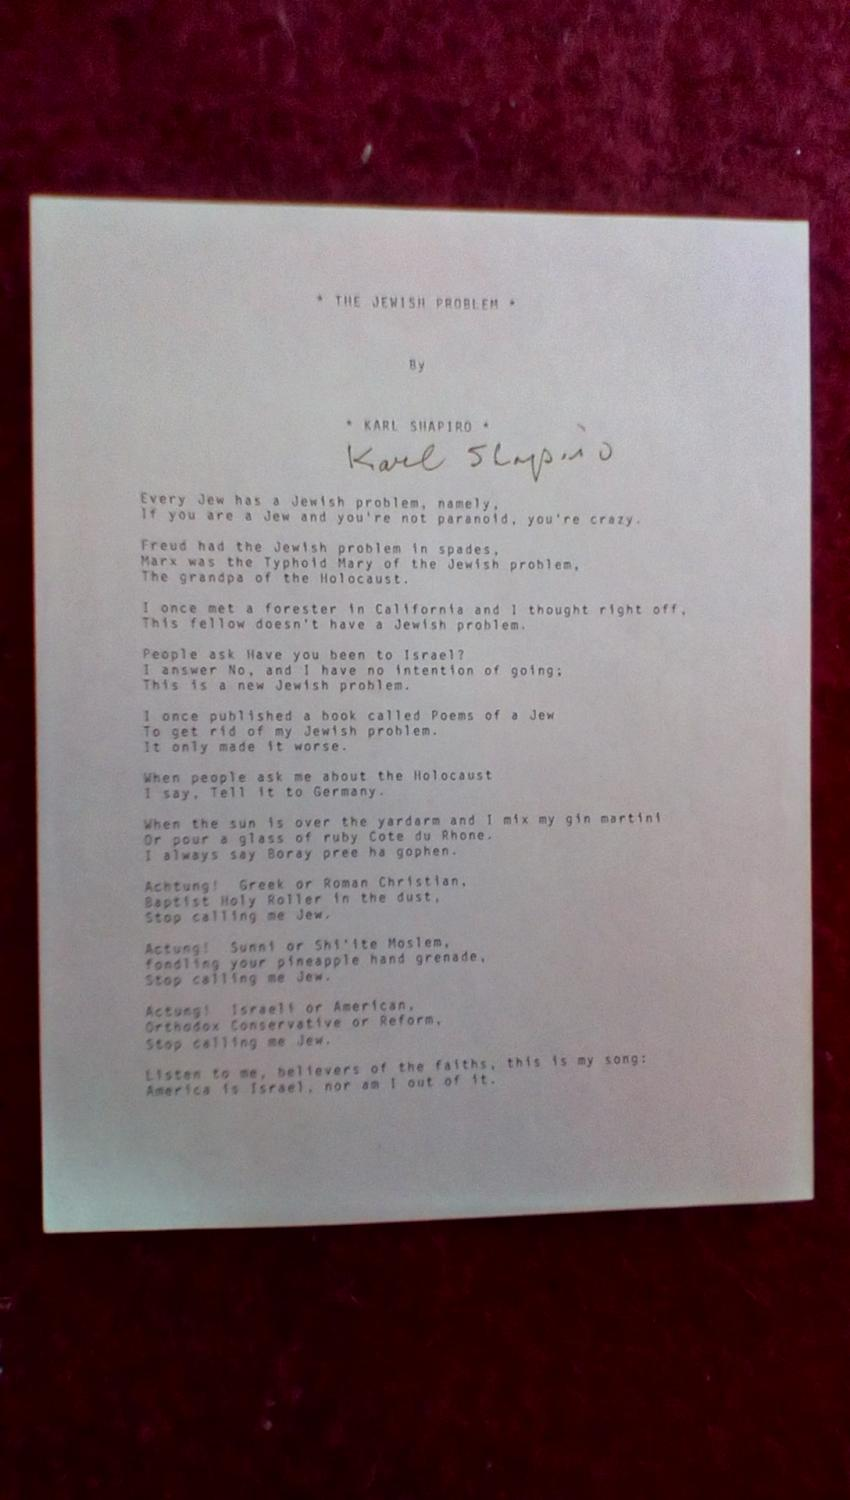 martin and the hand grenade copy of poem